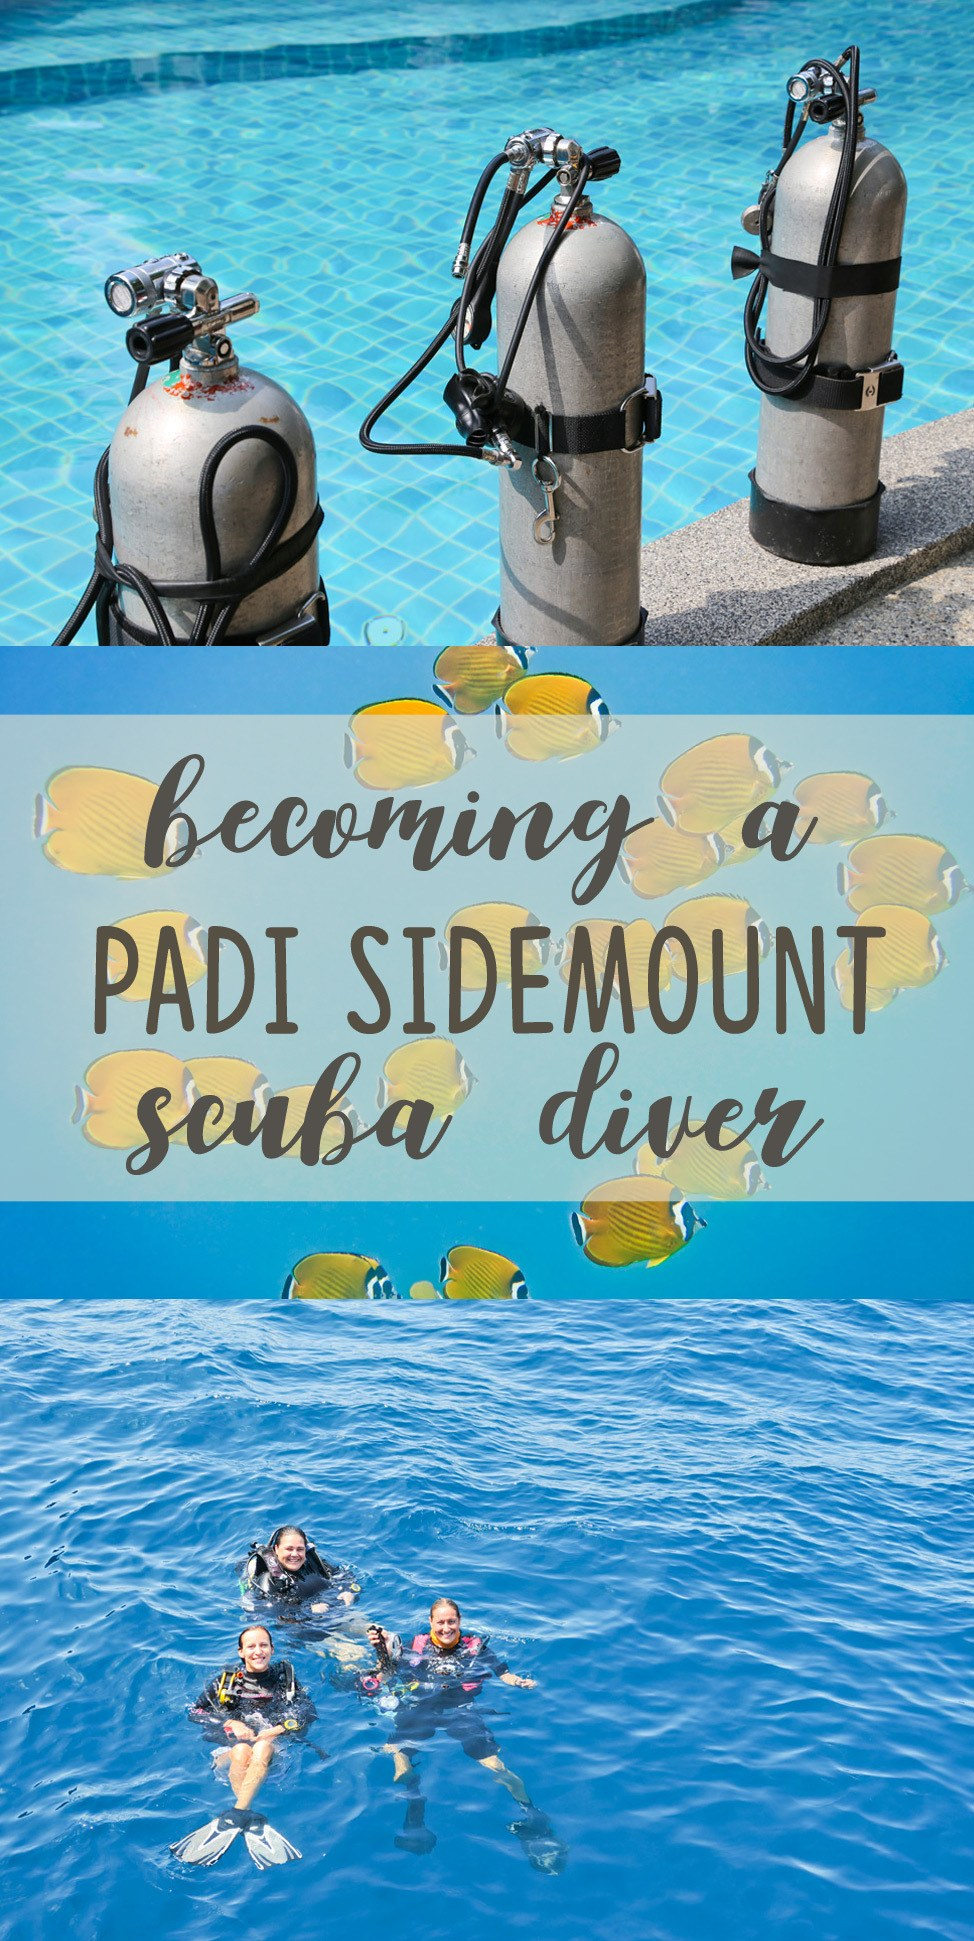 Becoming a PADI Sidemount Scuba Diver